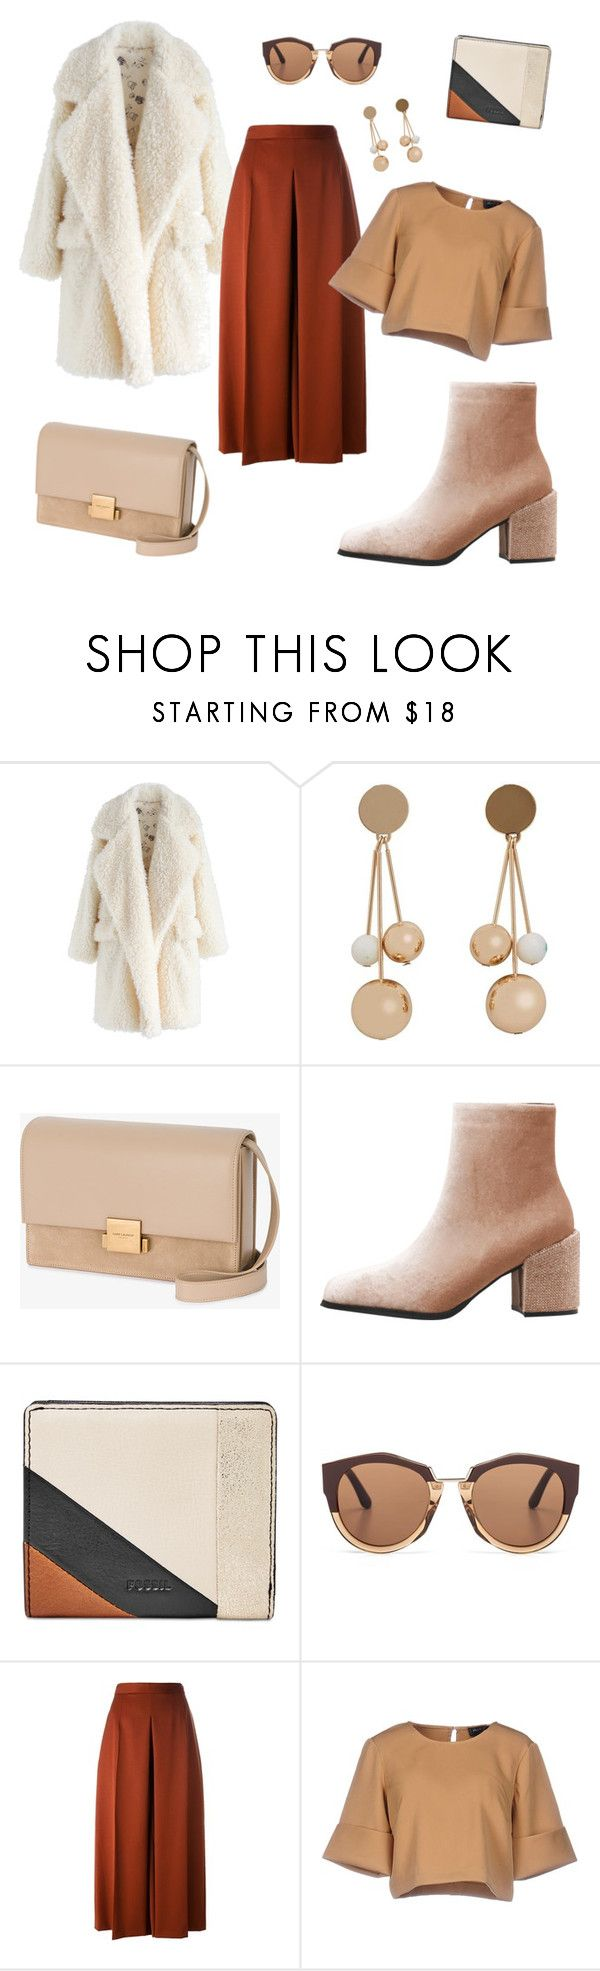 """Untitled #345"" by inesgenebra on Polyvore featuring beauty, Chicwish, MANGO, Yves Saint Laurent, FOSSIL, Marni, Alexander McQueen and The Fifth Label"